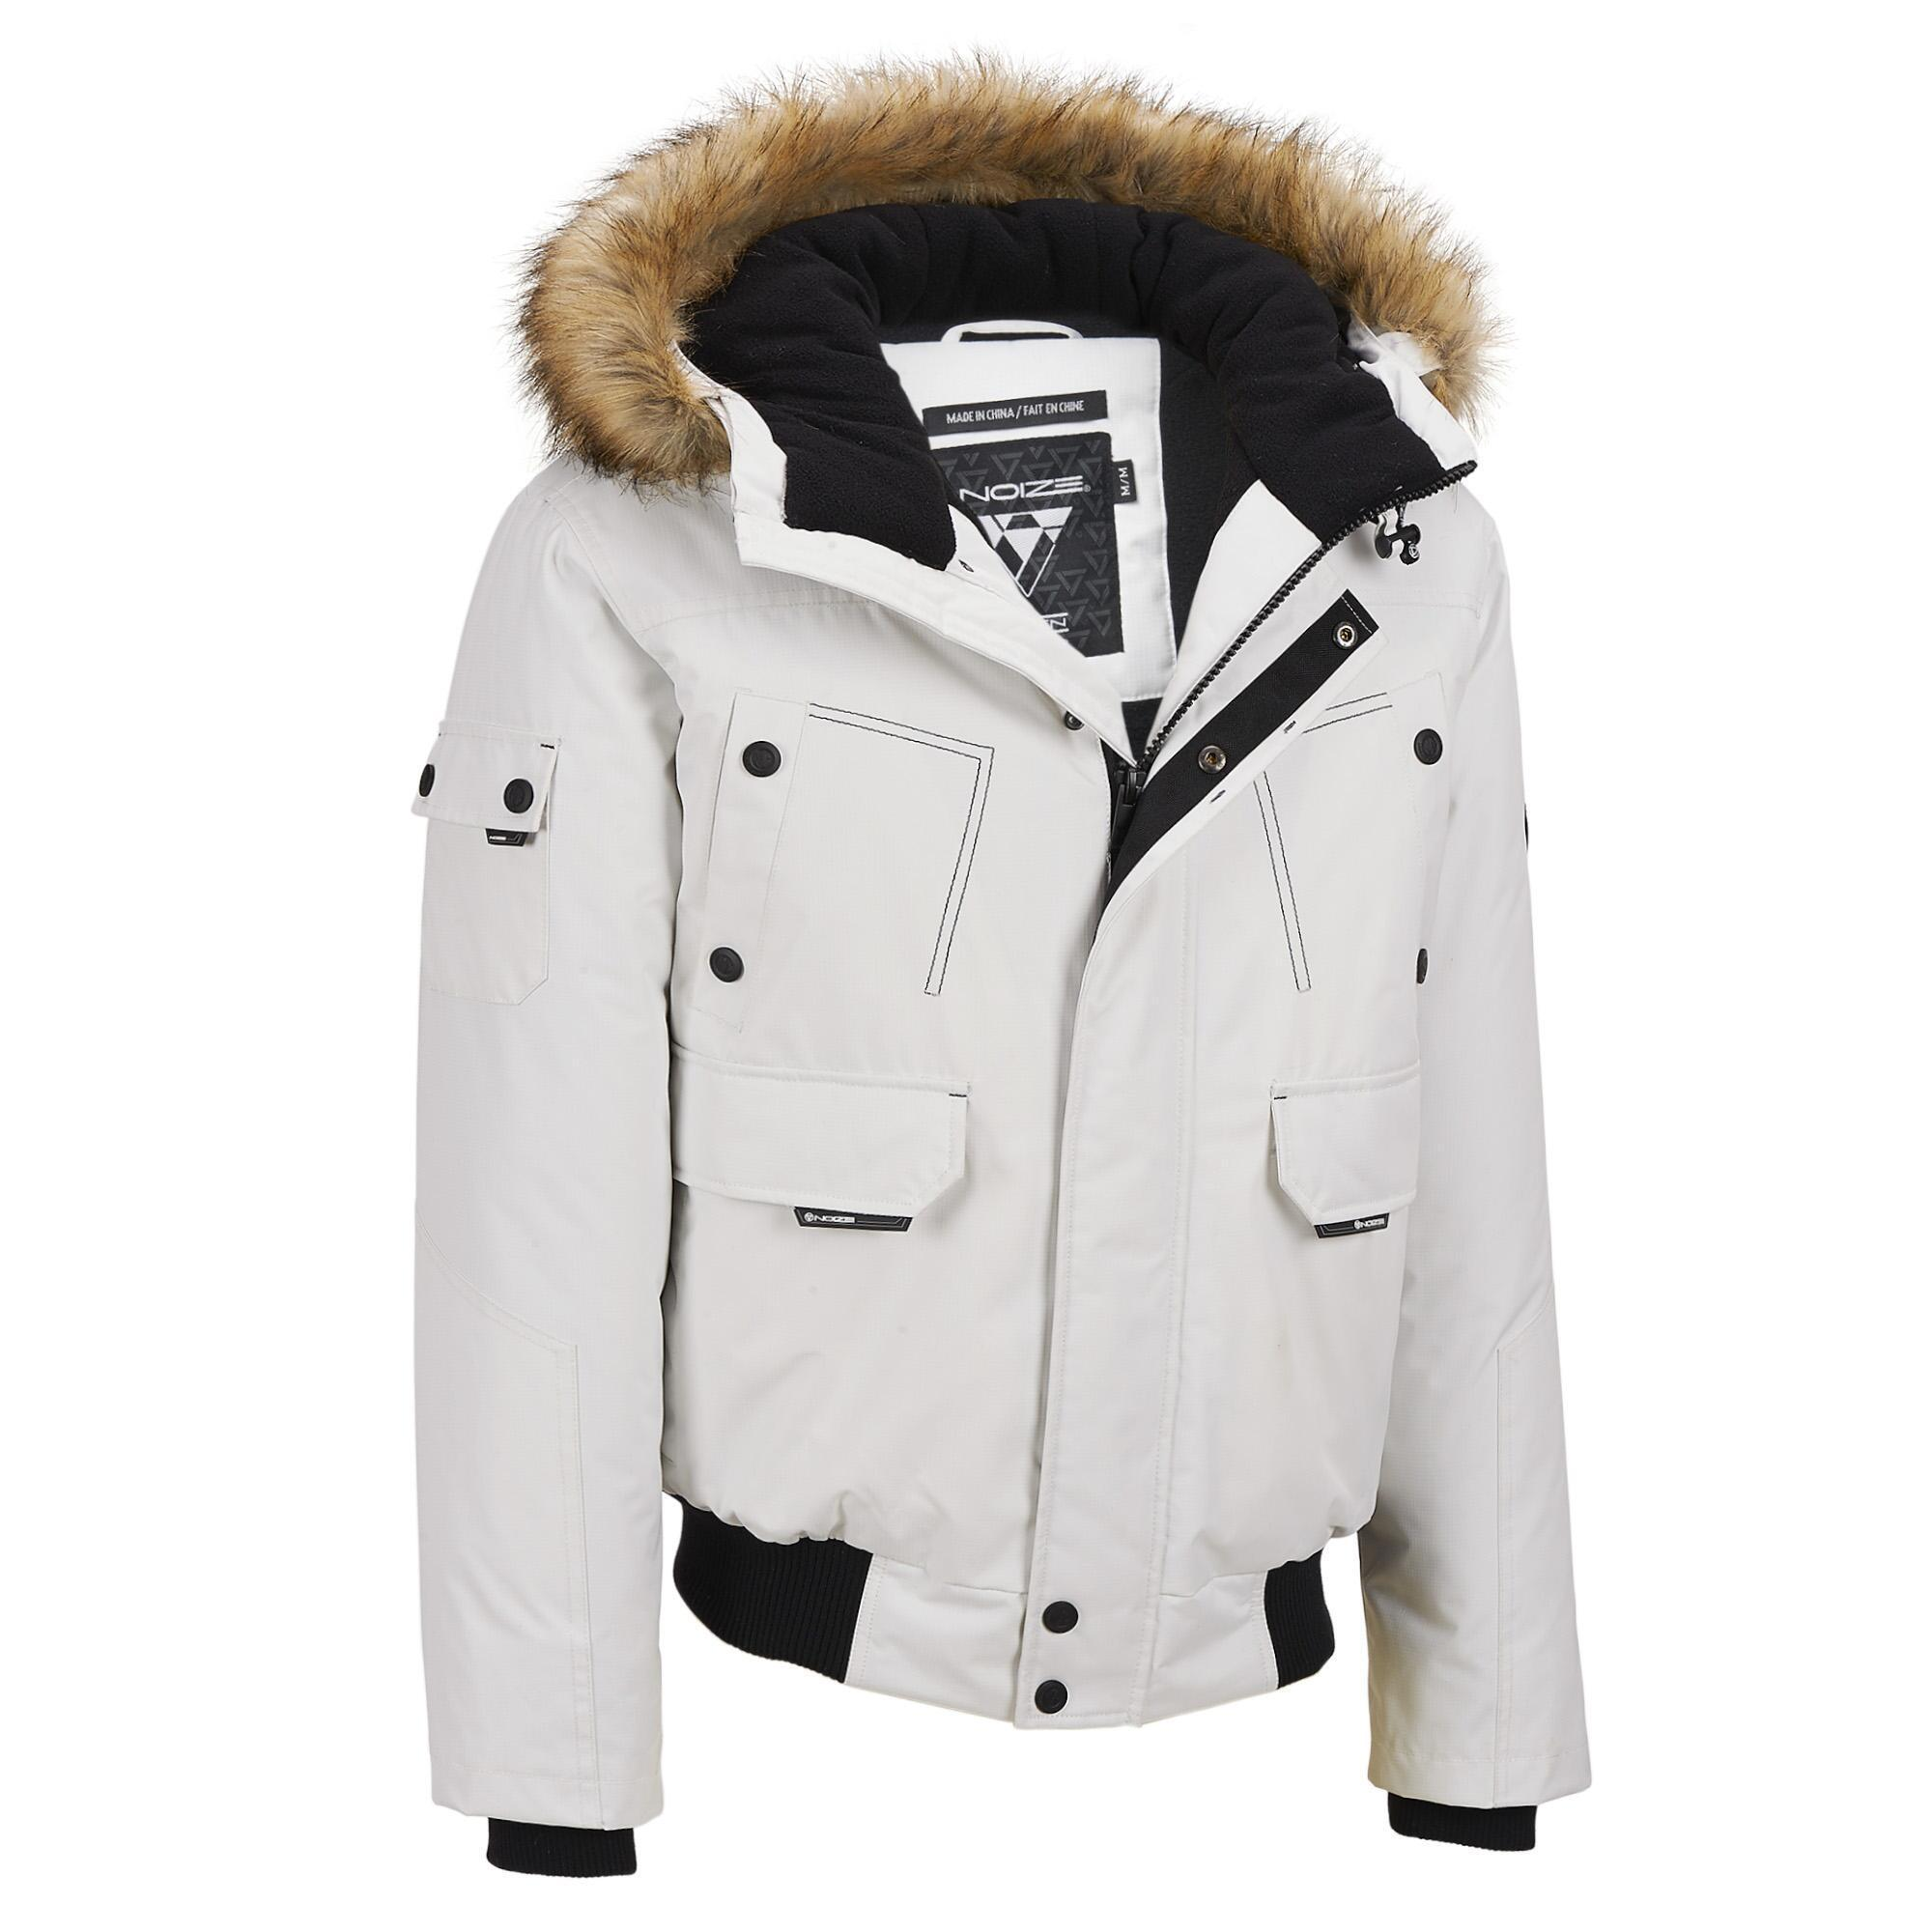 7b5591ba9 Wilsons Leather White Web Buster Noize Hooded Fabric Bomber W/ Faux-fur Trim